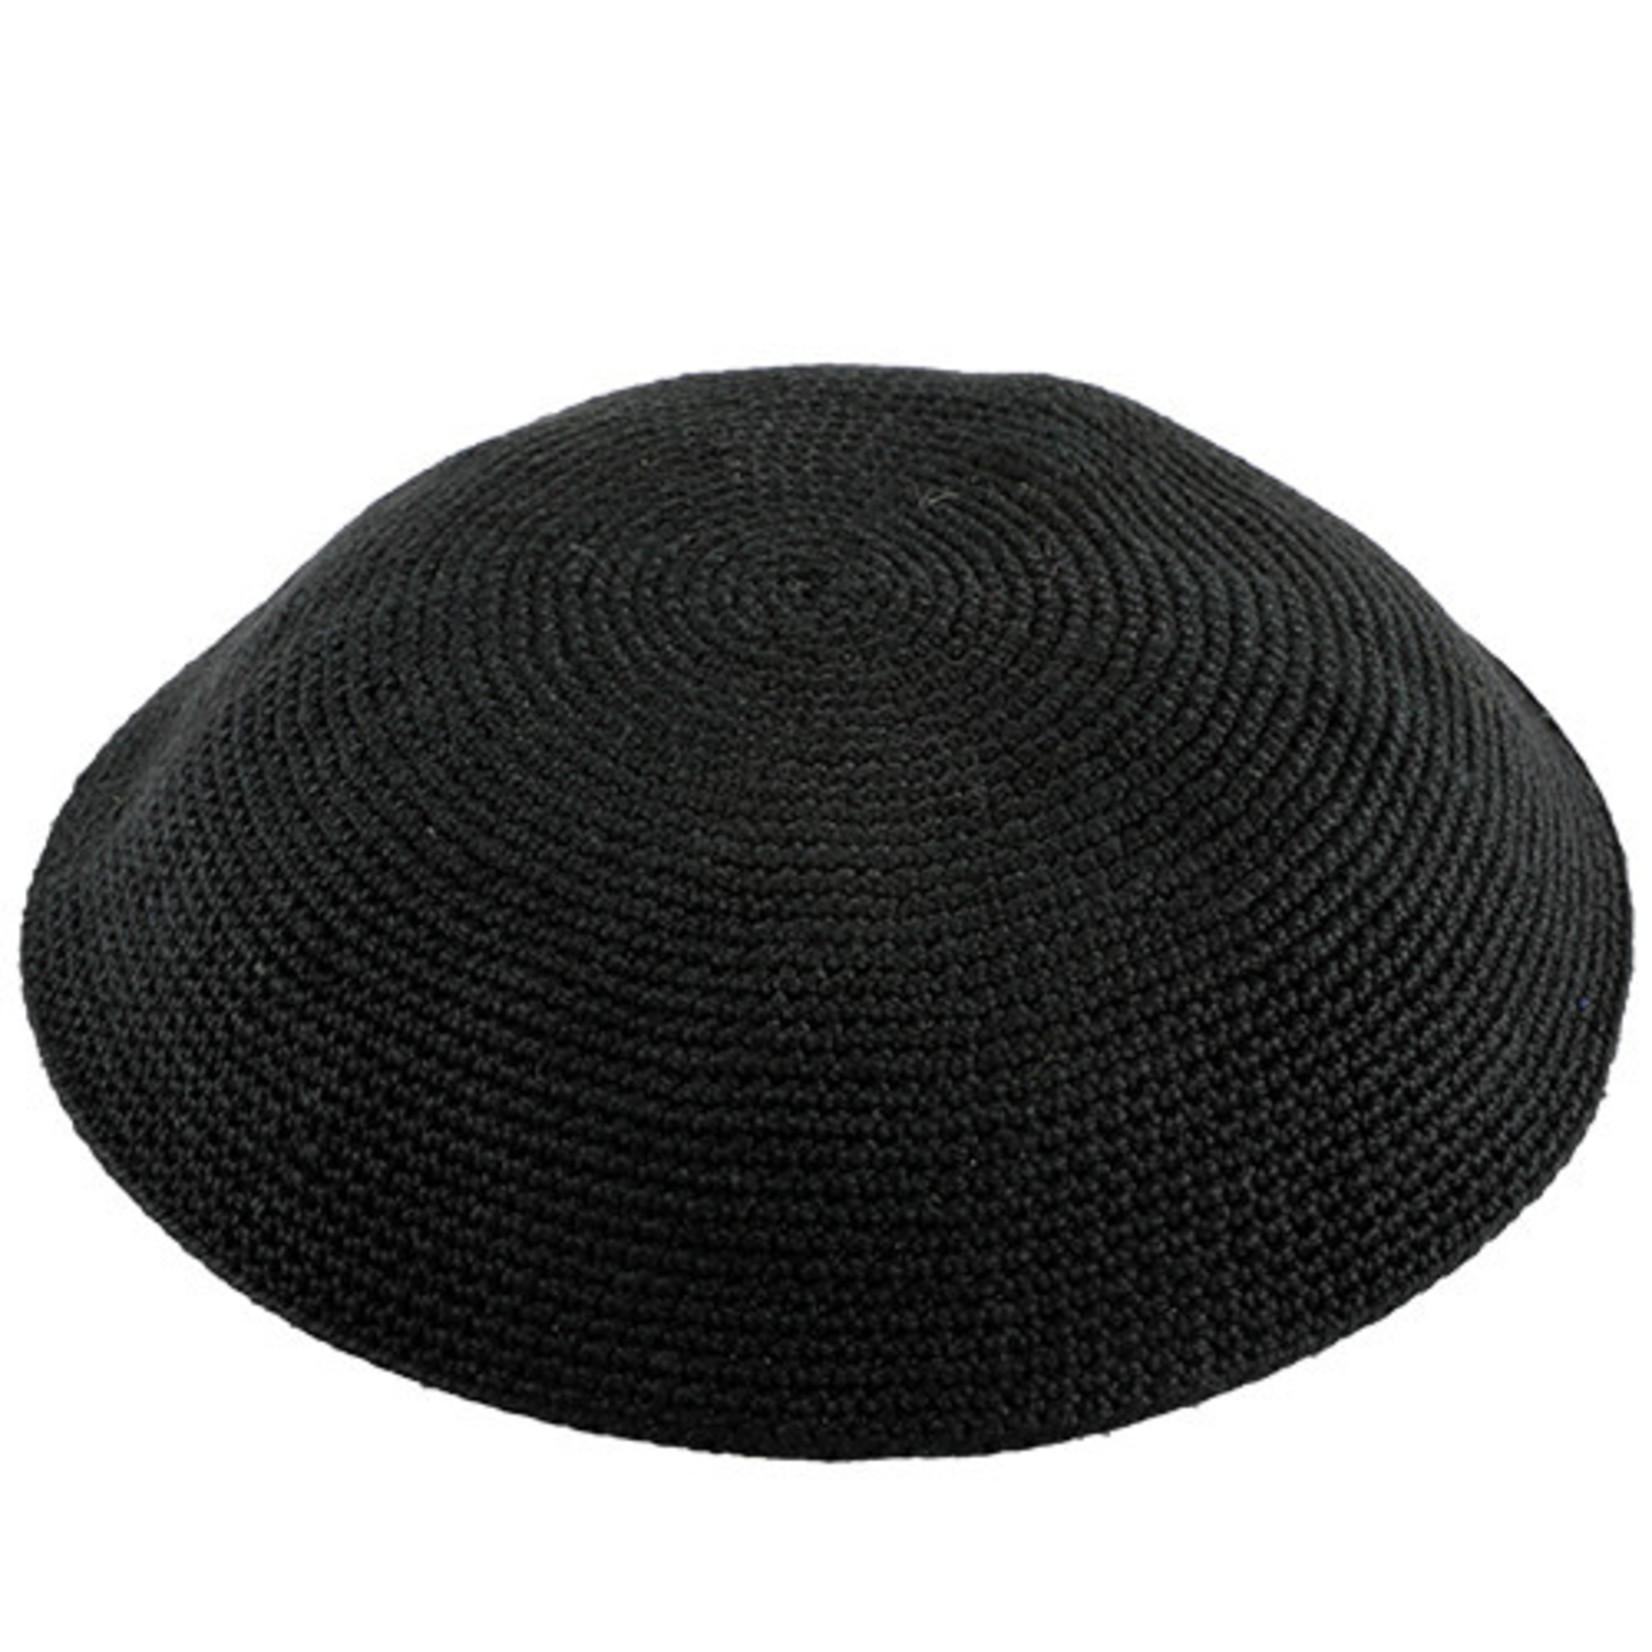 DMC Knit Kippah, Black, 13cm